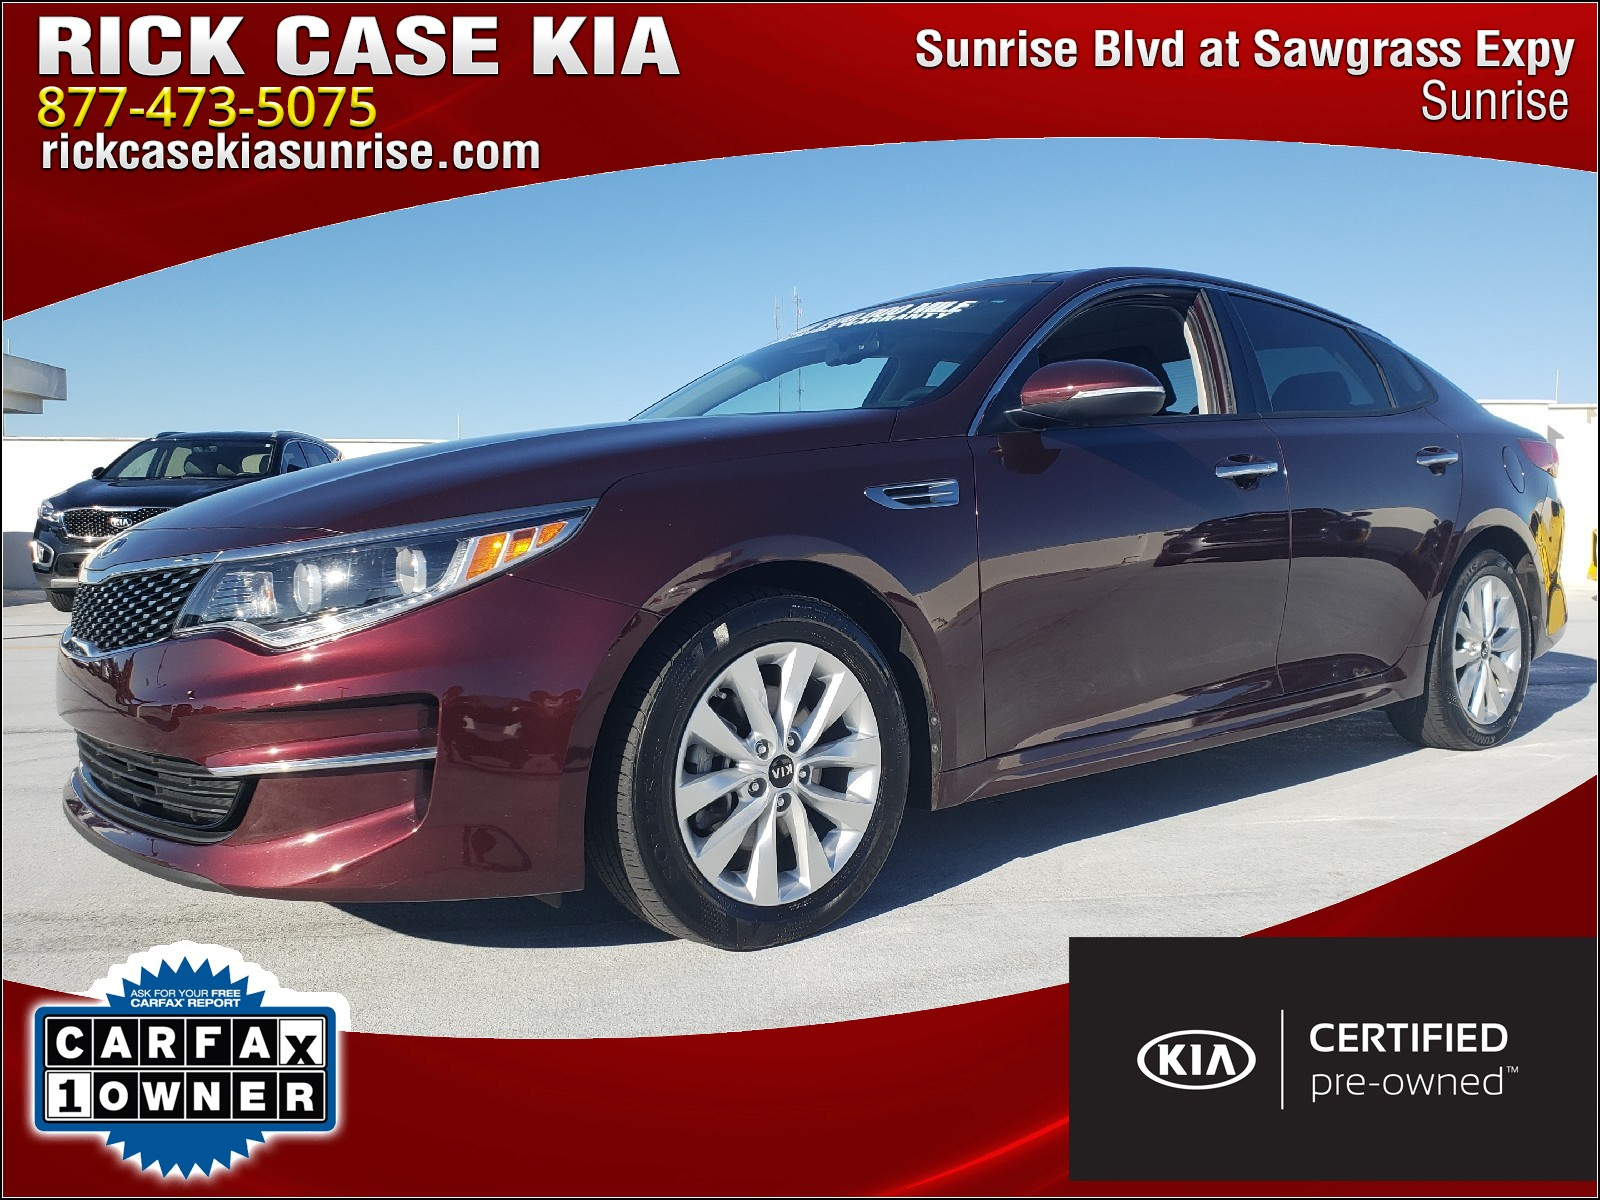 Carfax Used Cars Under 4000 Best Of Used 2016 Kia Optima Ex In fort Lauderdale Fl area Rick Case Kia